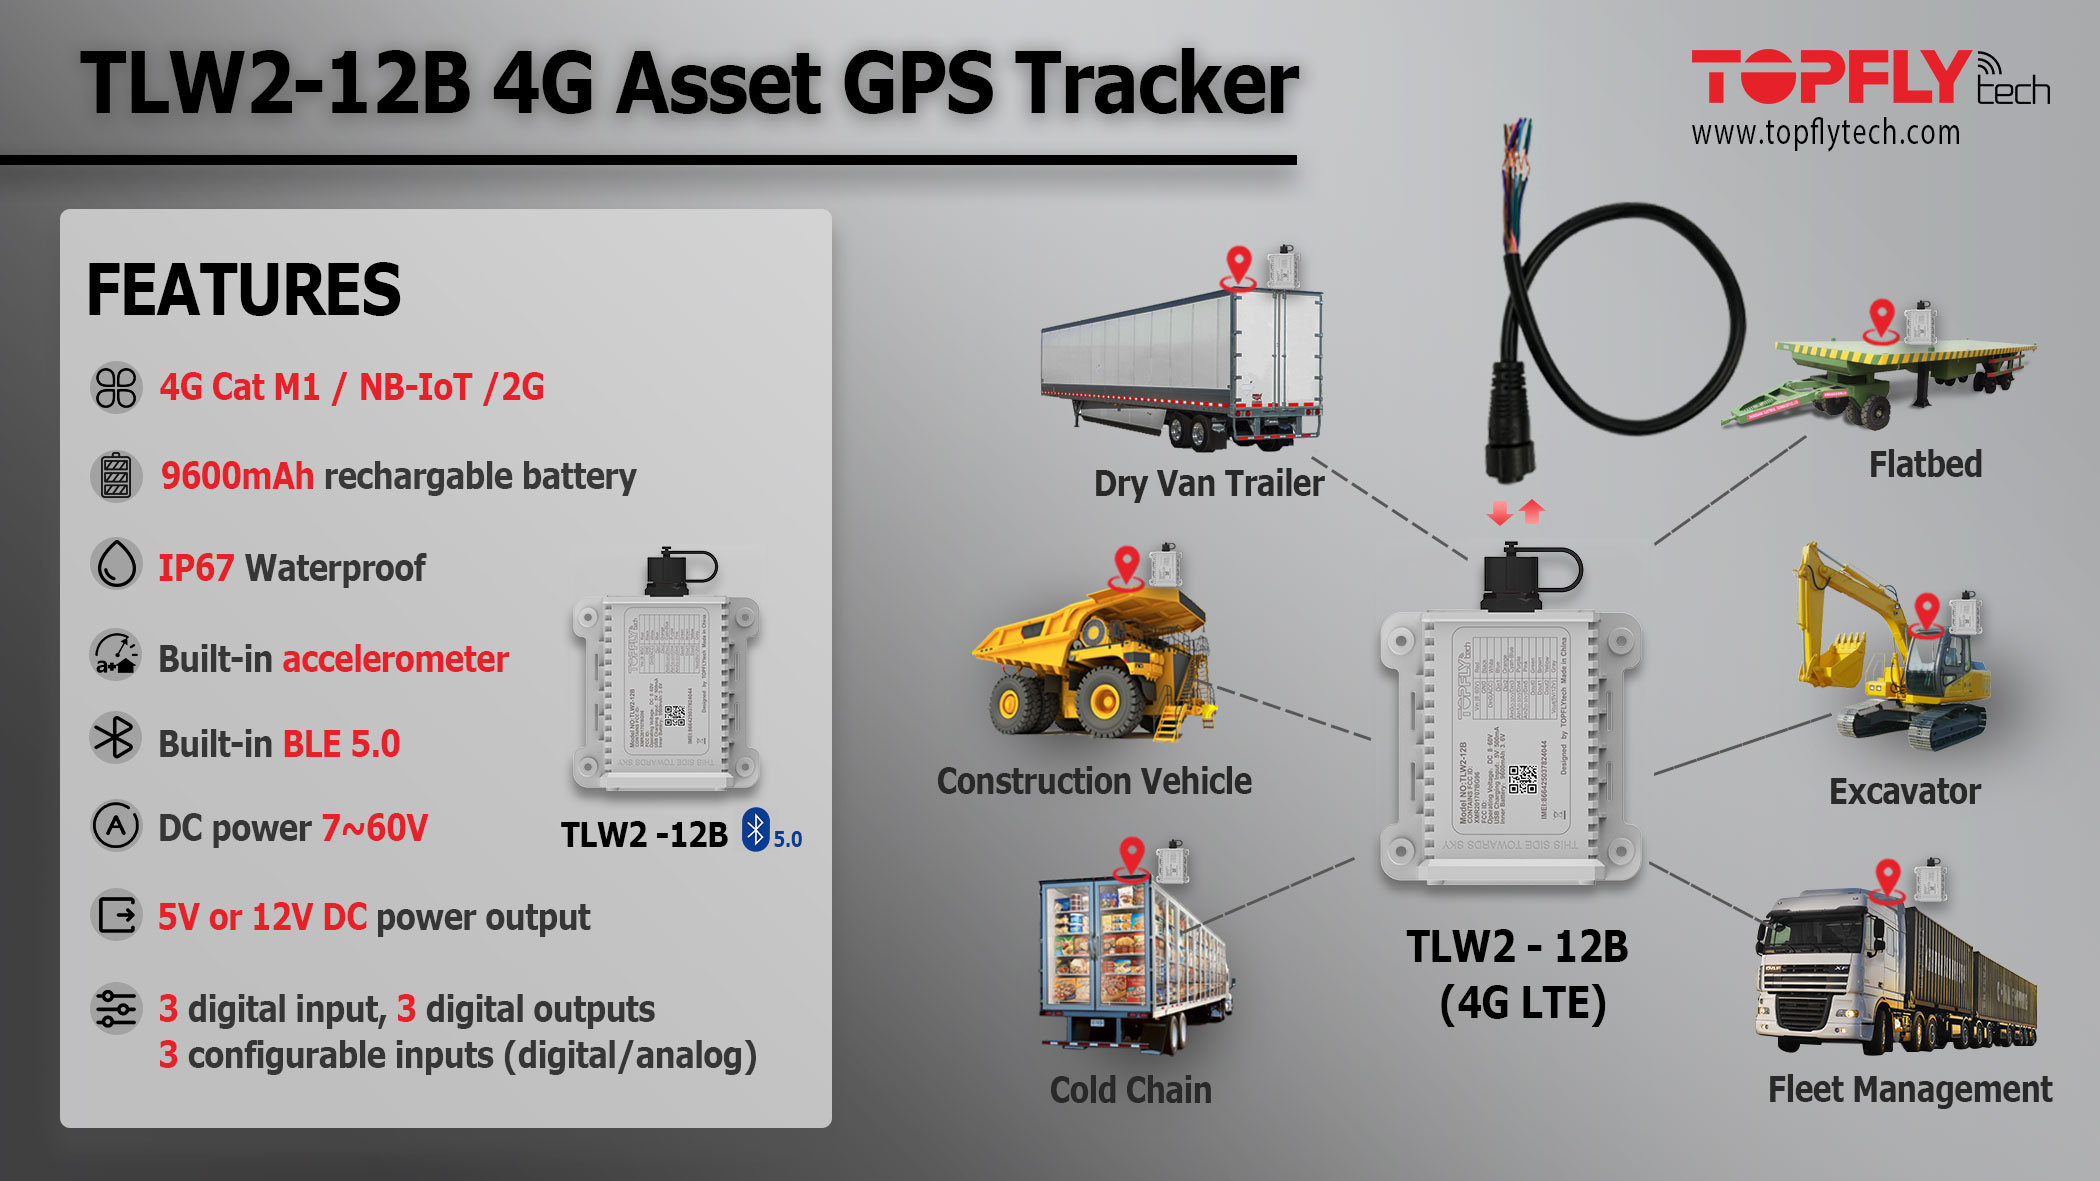 Product | TLW2-12B 4G Asset Tracker